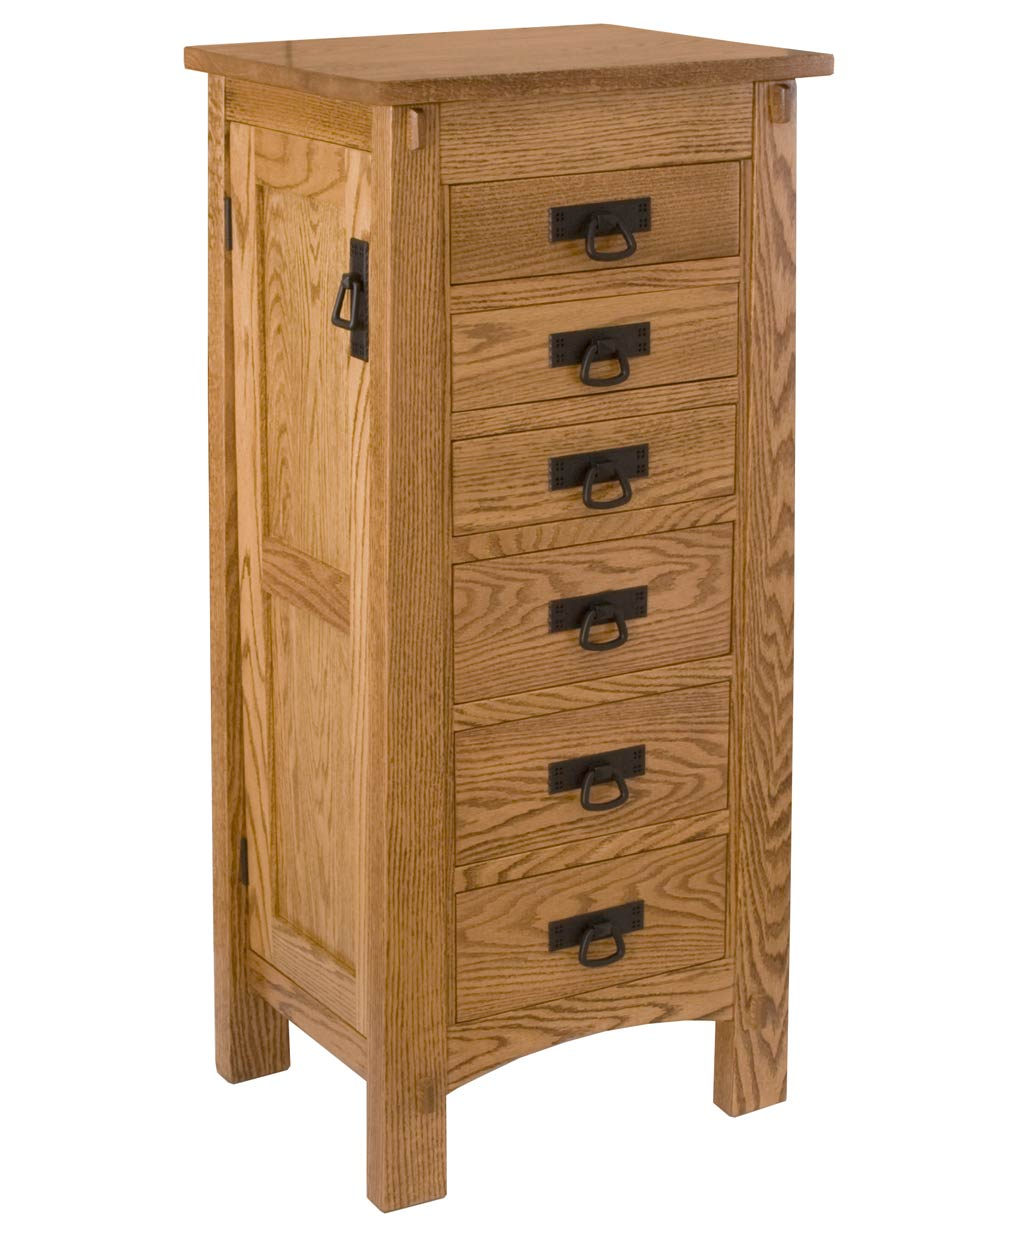 Modesto Jewelry Armoire Amish Direct Furniture